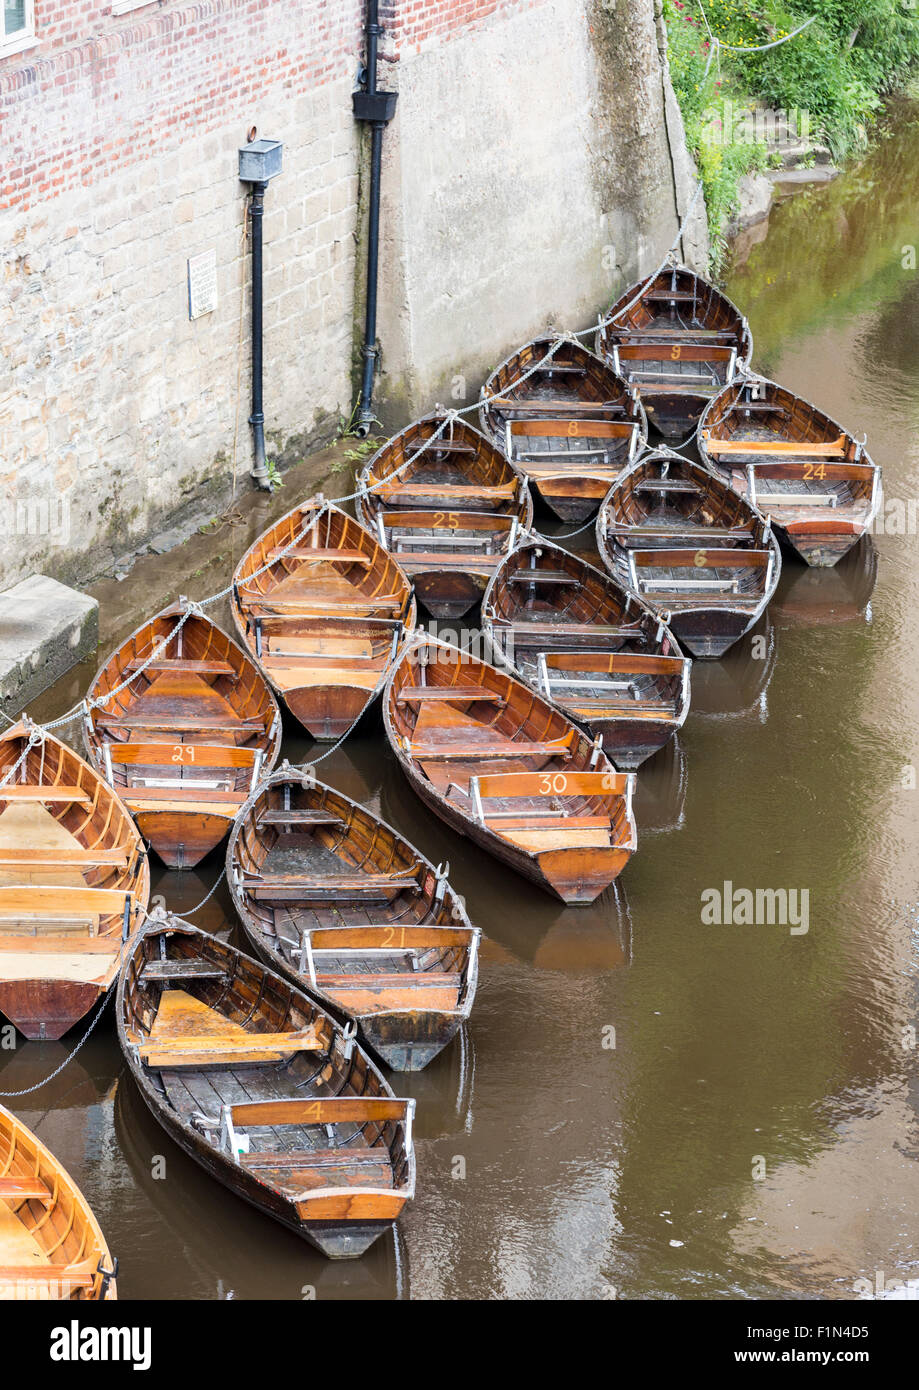 Rowboats for hire in the River Wear, Durham, England, UK. View from Leazes Road bridge - Stock Image